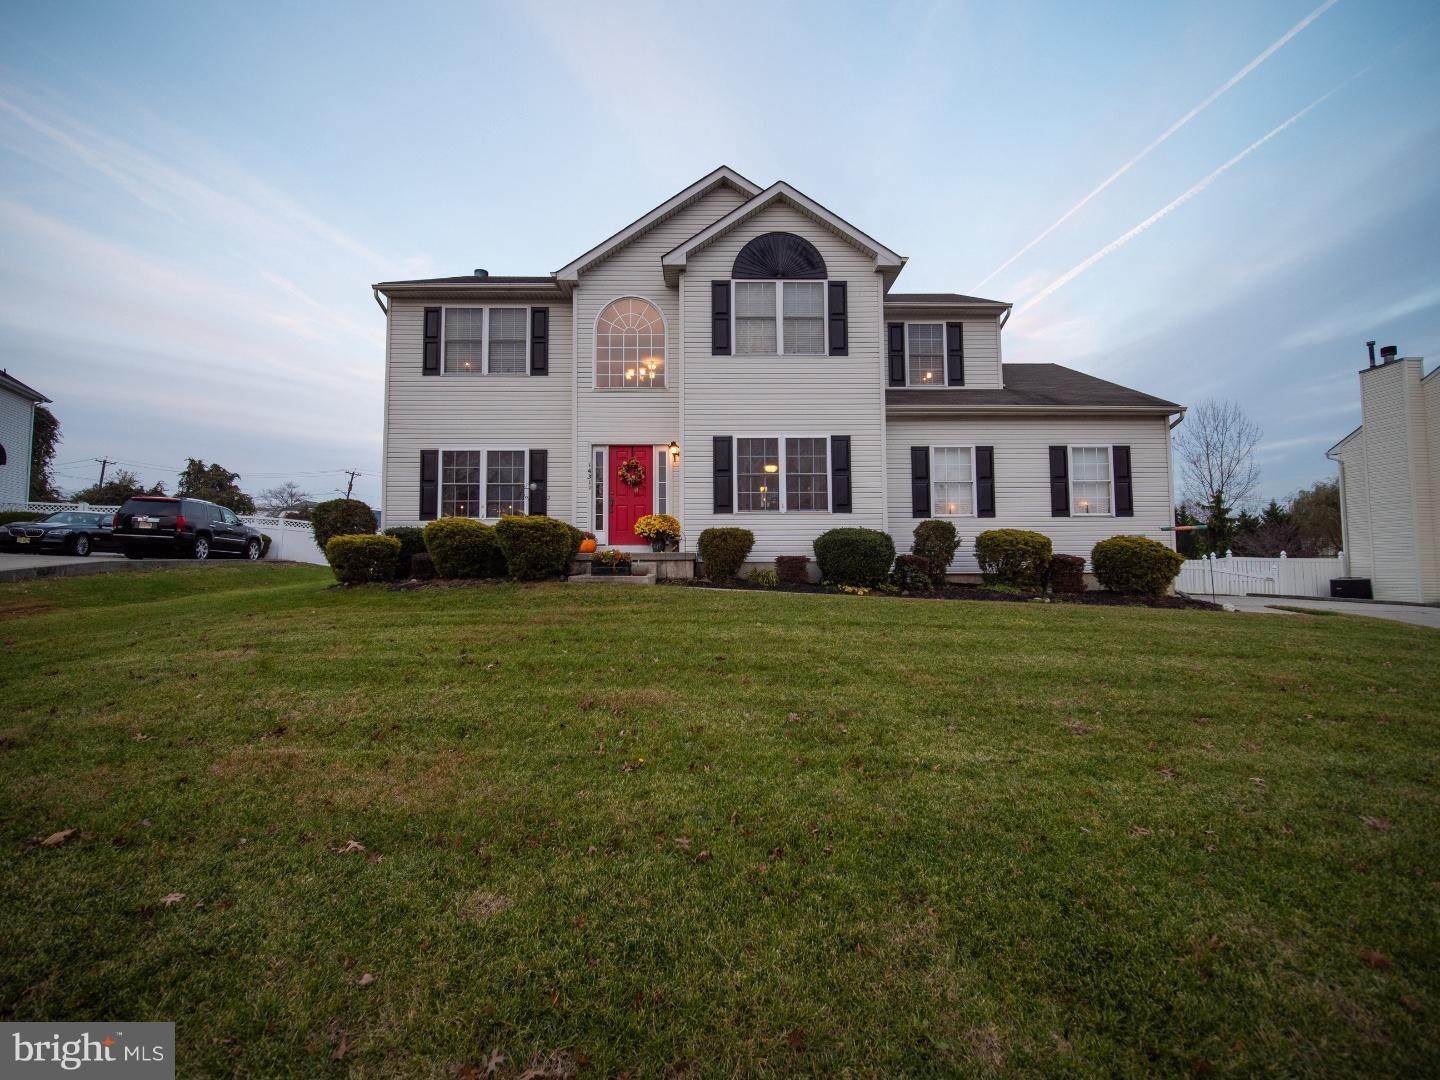 Single Family Home for Sale at 1431 WINDSOR Drive West Deptford, New Jersey 08086 United States